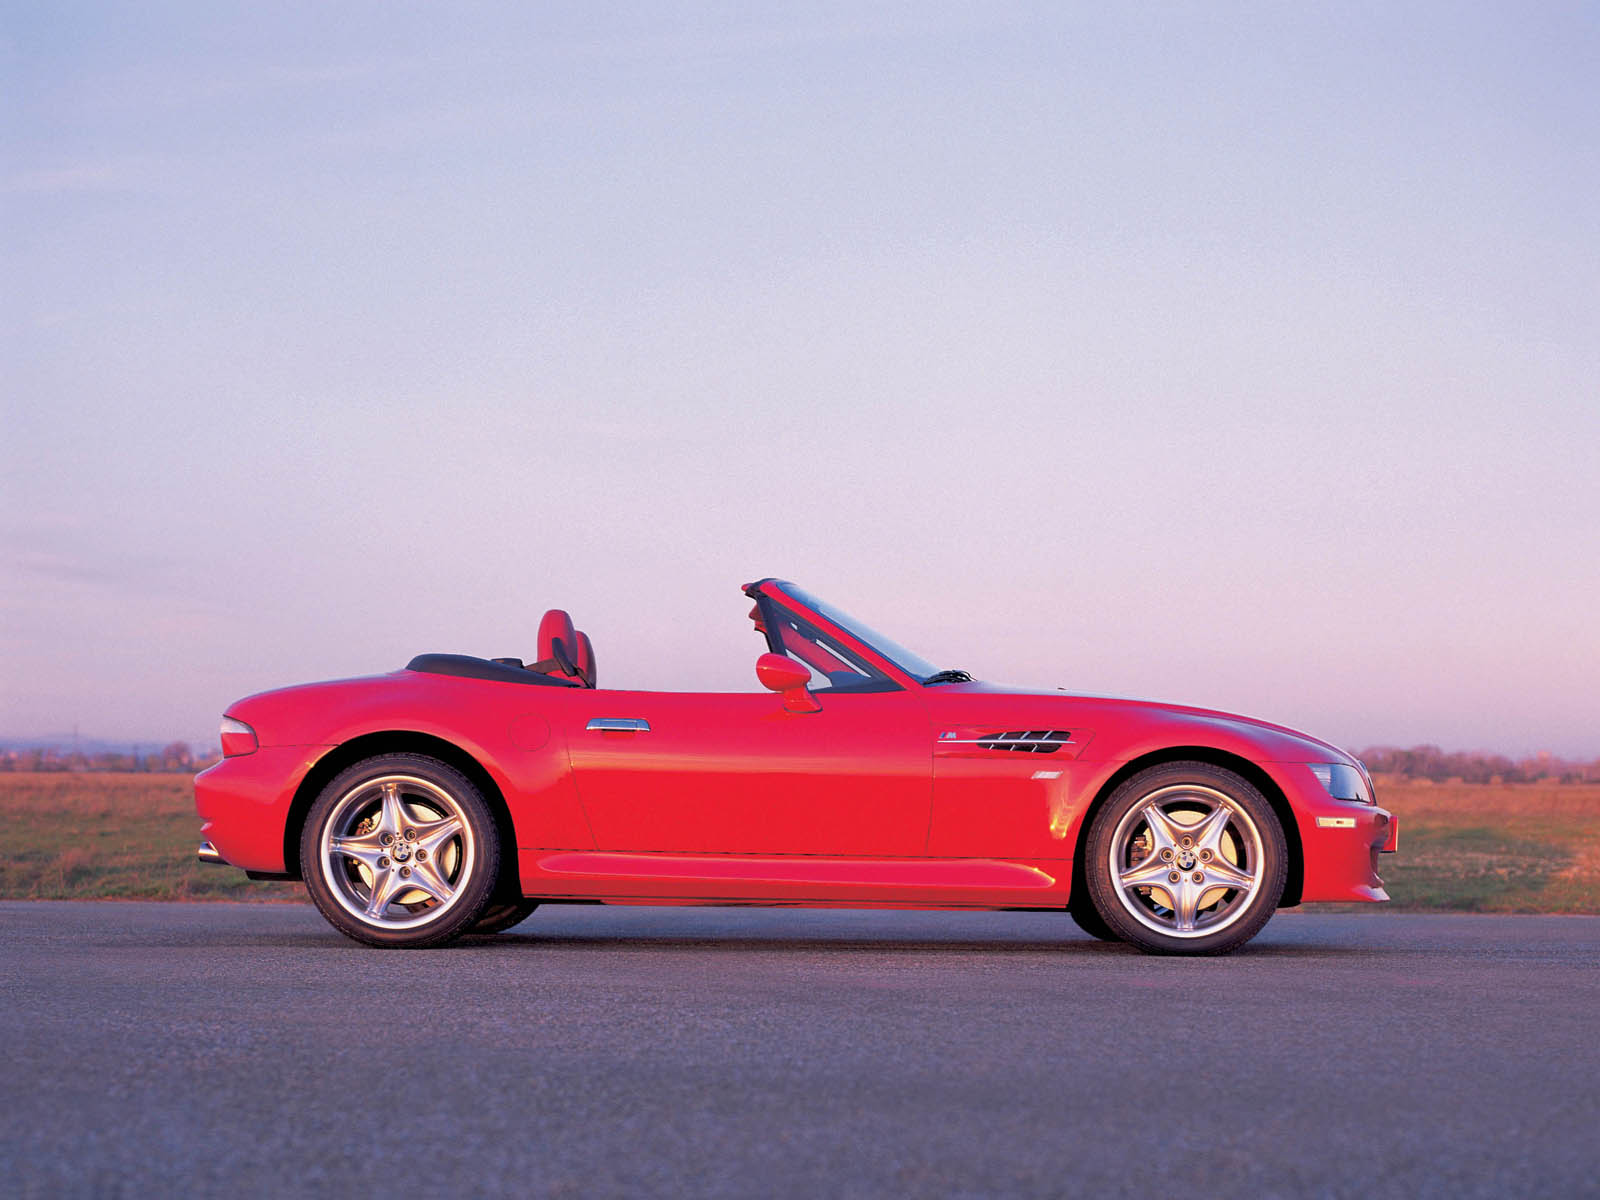 bmw z3 m roadster 1997 pictures #6